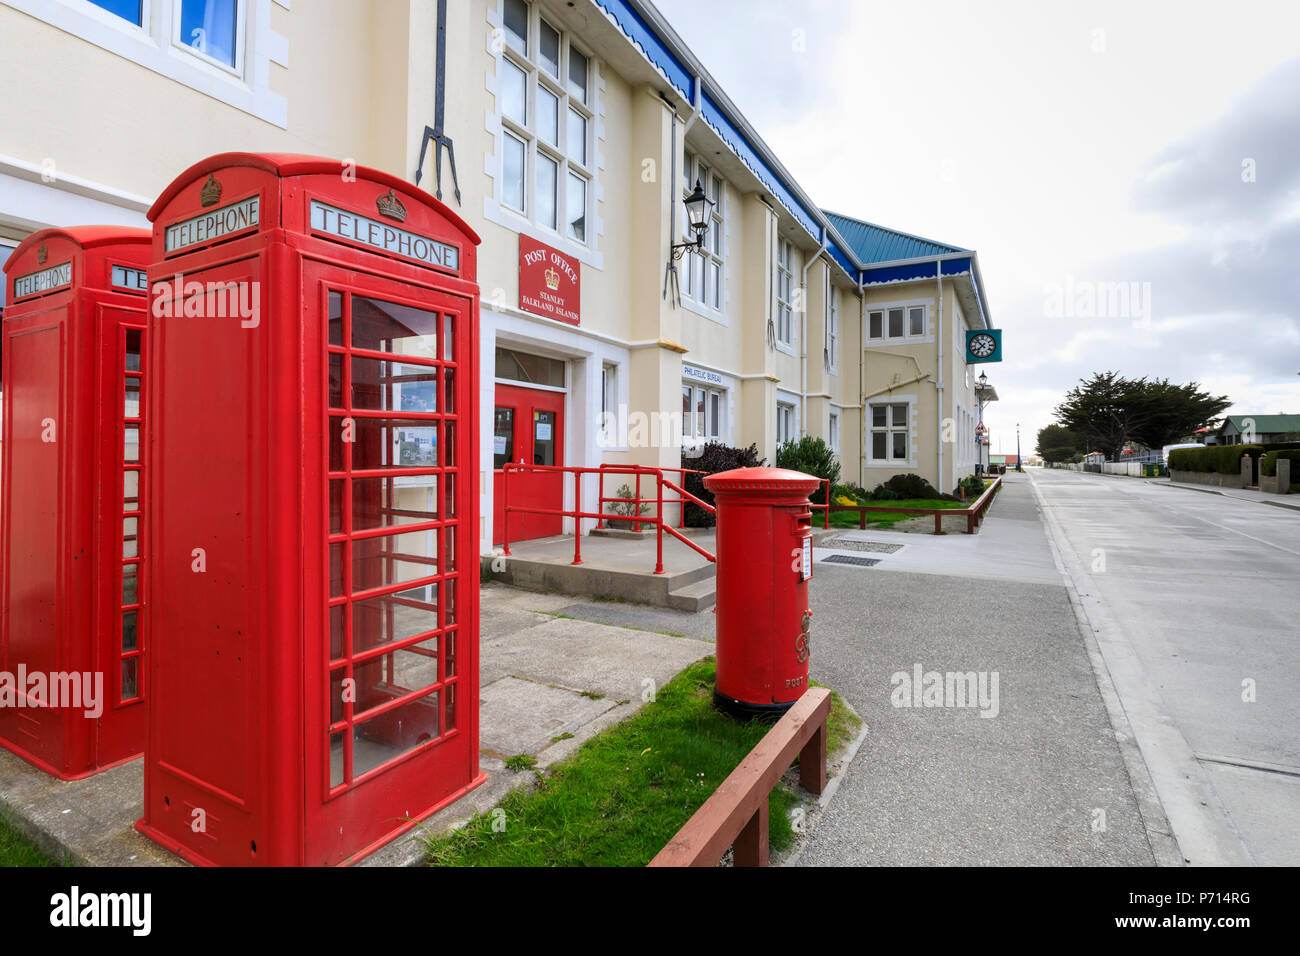 Post Office, Philatelic Bureau, red telephone boxes and post box, Central Stanley, Port Stanley, Falkland Islands, South America - Stock Image